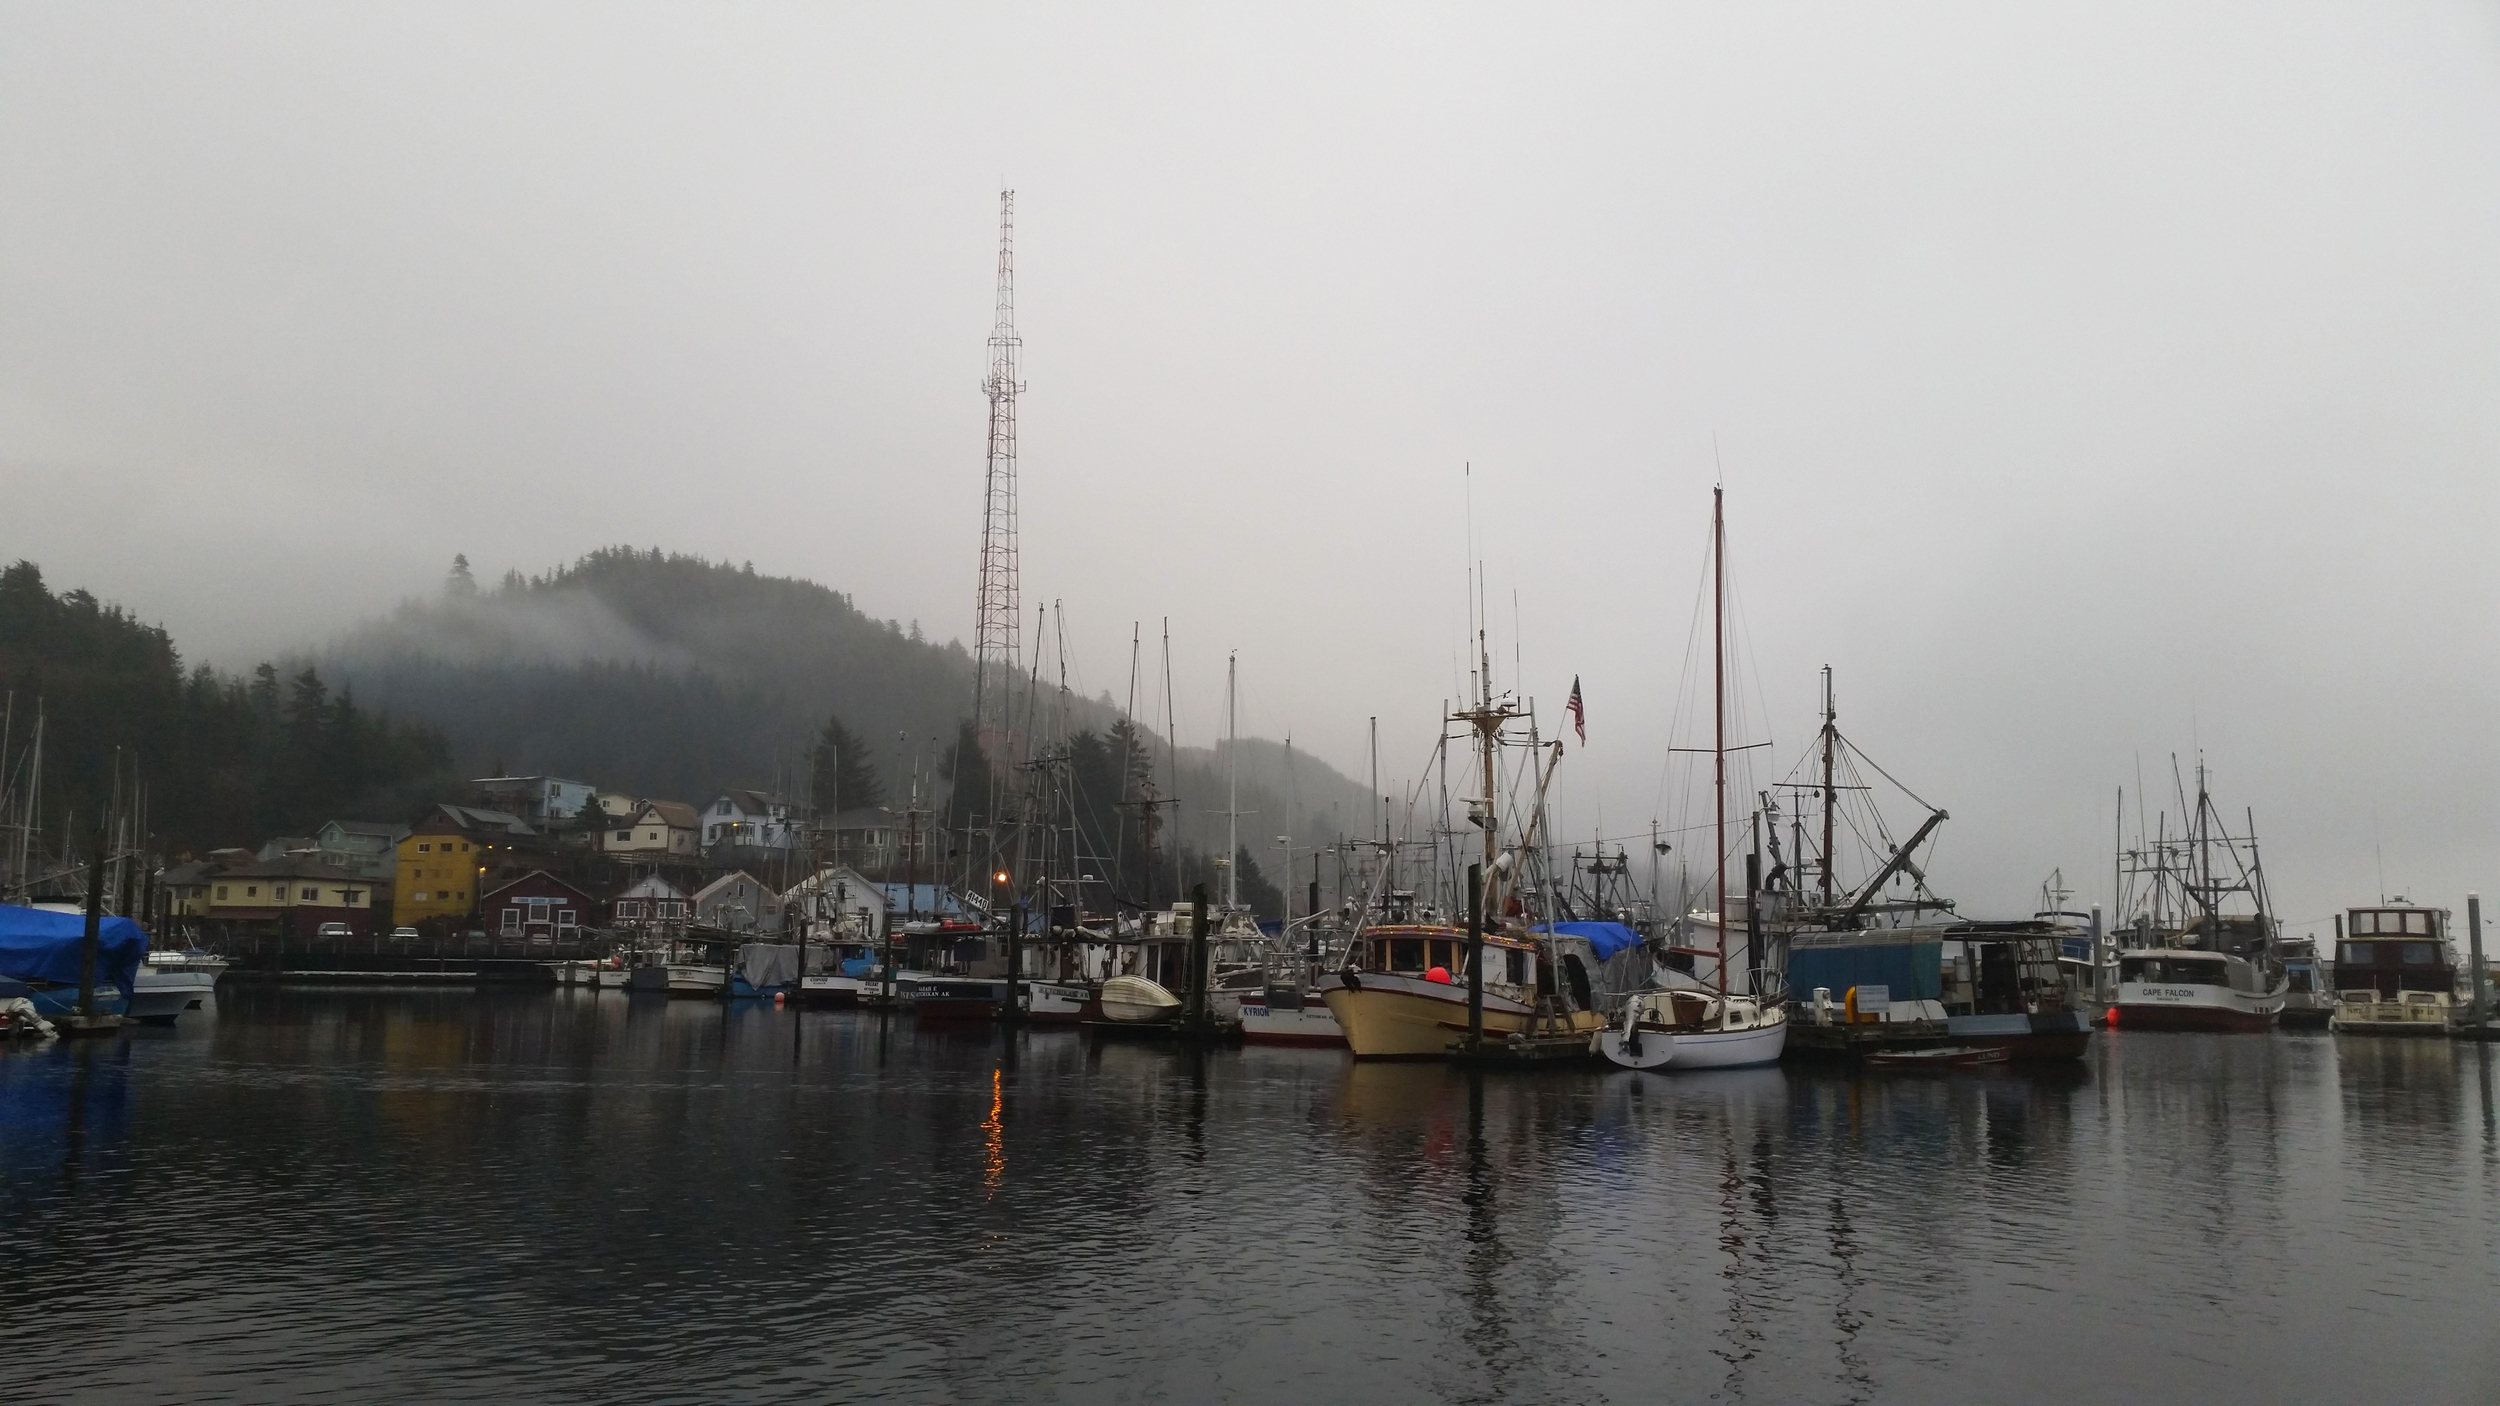 Deer Mountain disappears into the clouds on a misty day in Thomas Basin, Ketchikan, Alaska.